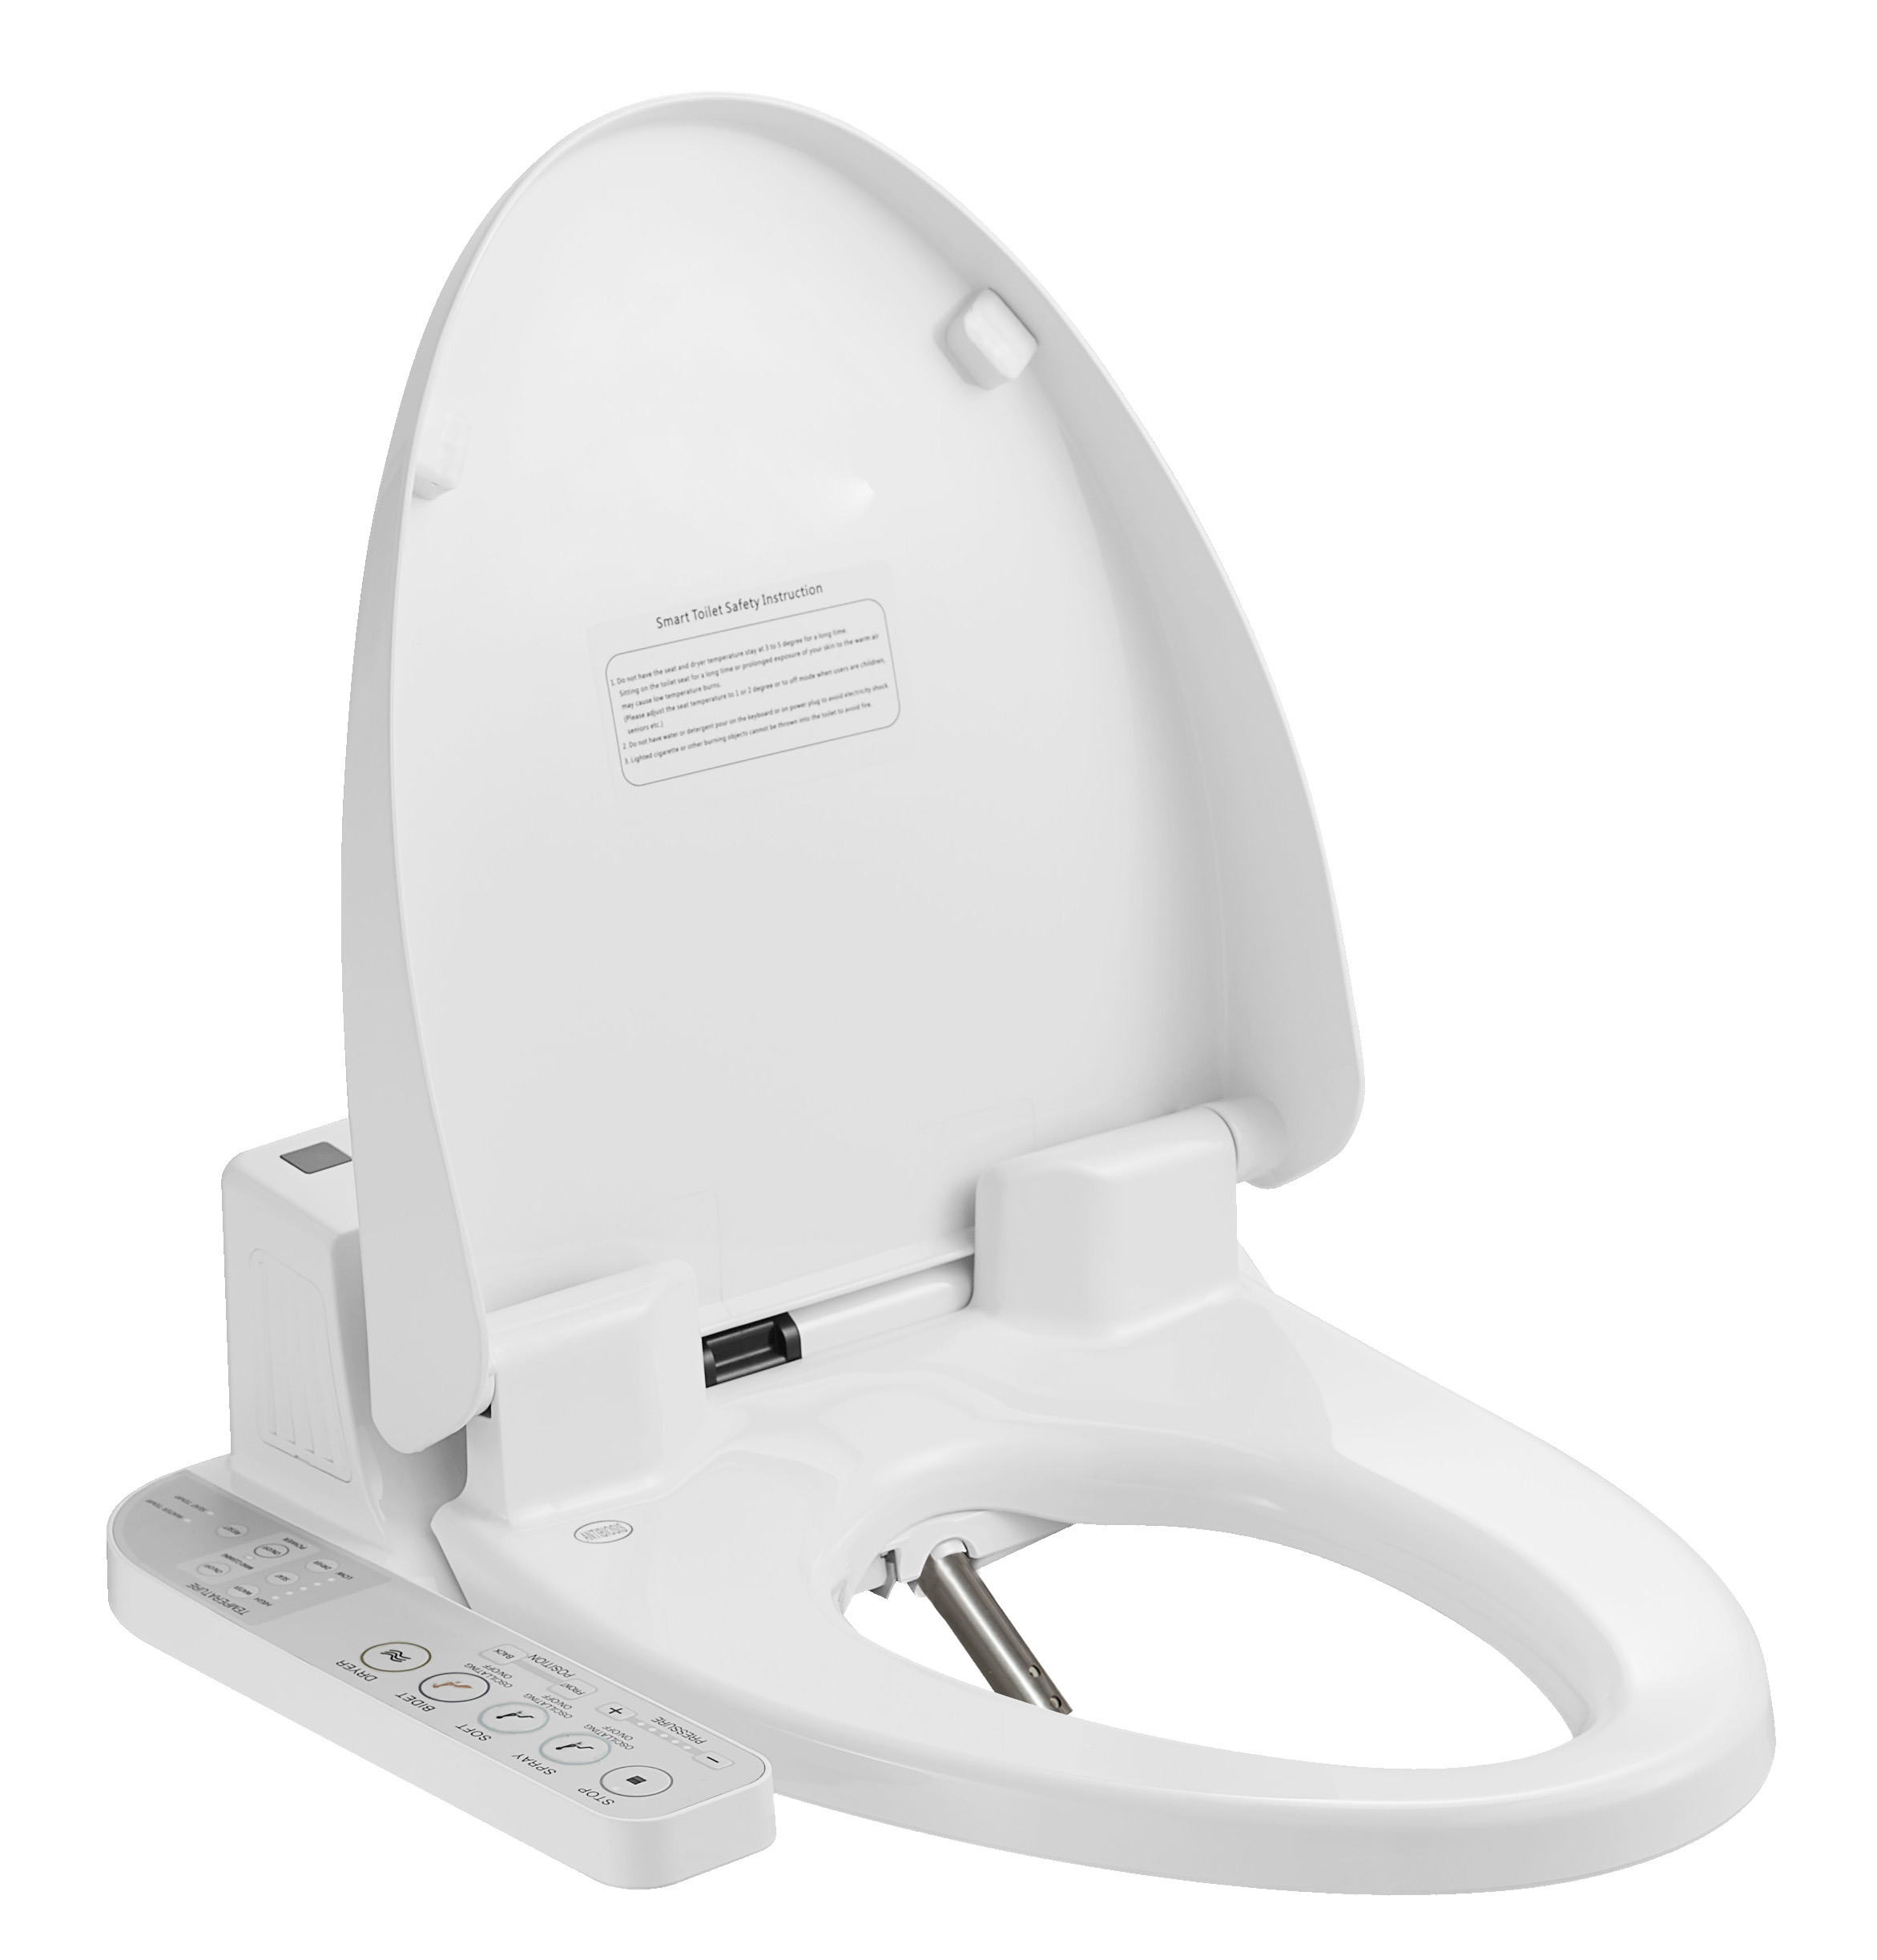 Soft Close Heated Water Cleaning Hyundai Bidet Toilet Seat Zjf 01 Buy Heated Electric Toilet Seat Water Spray Toilet Seat Intelligent Washlet Product On Alibaba Com